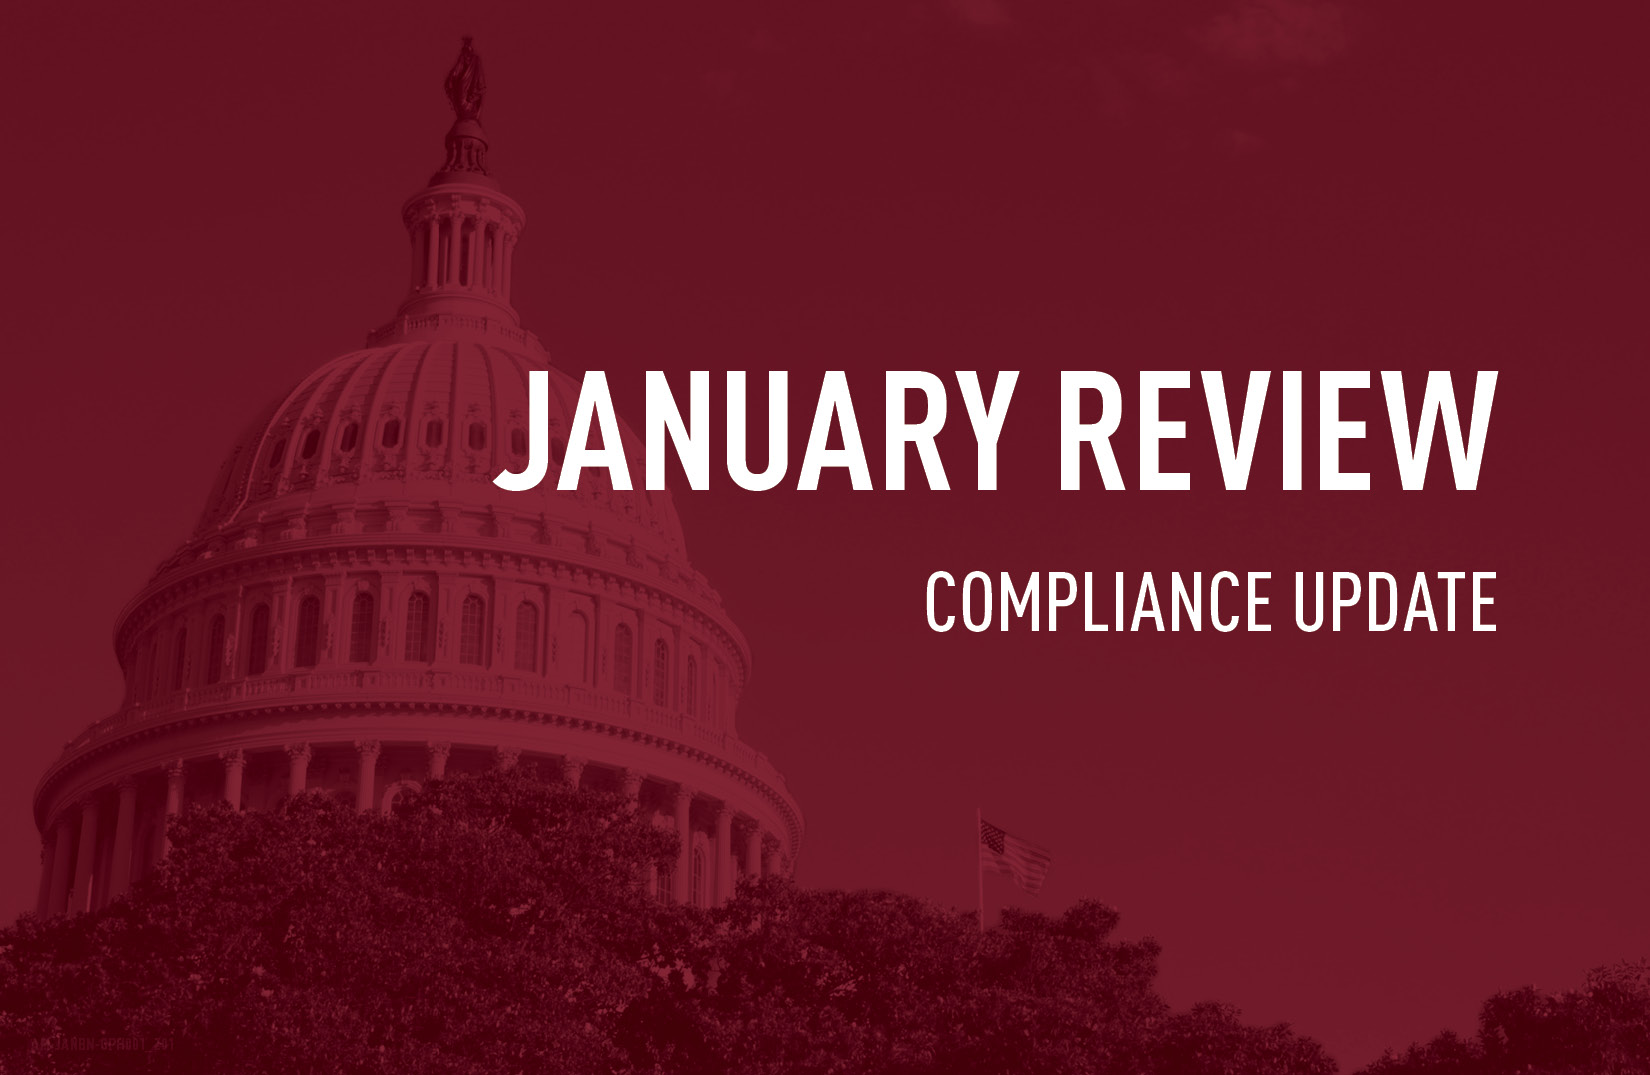 January review compliance update